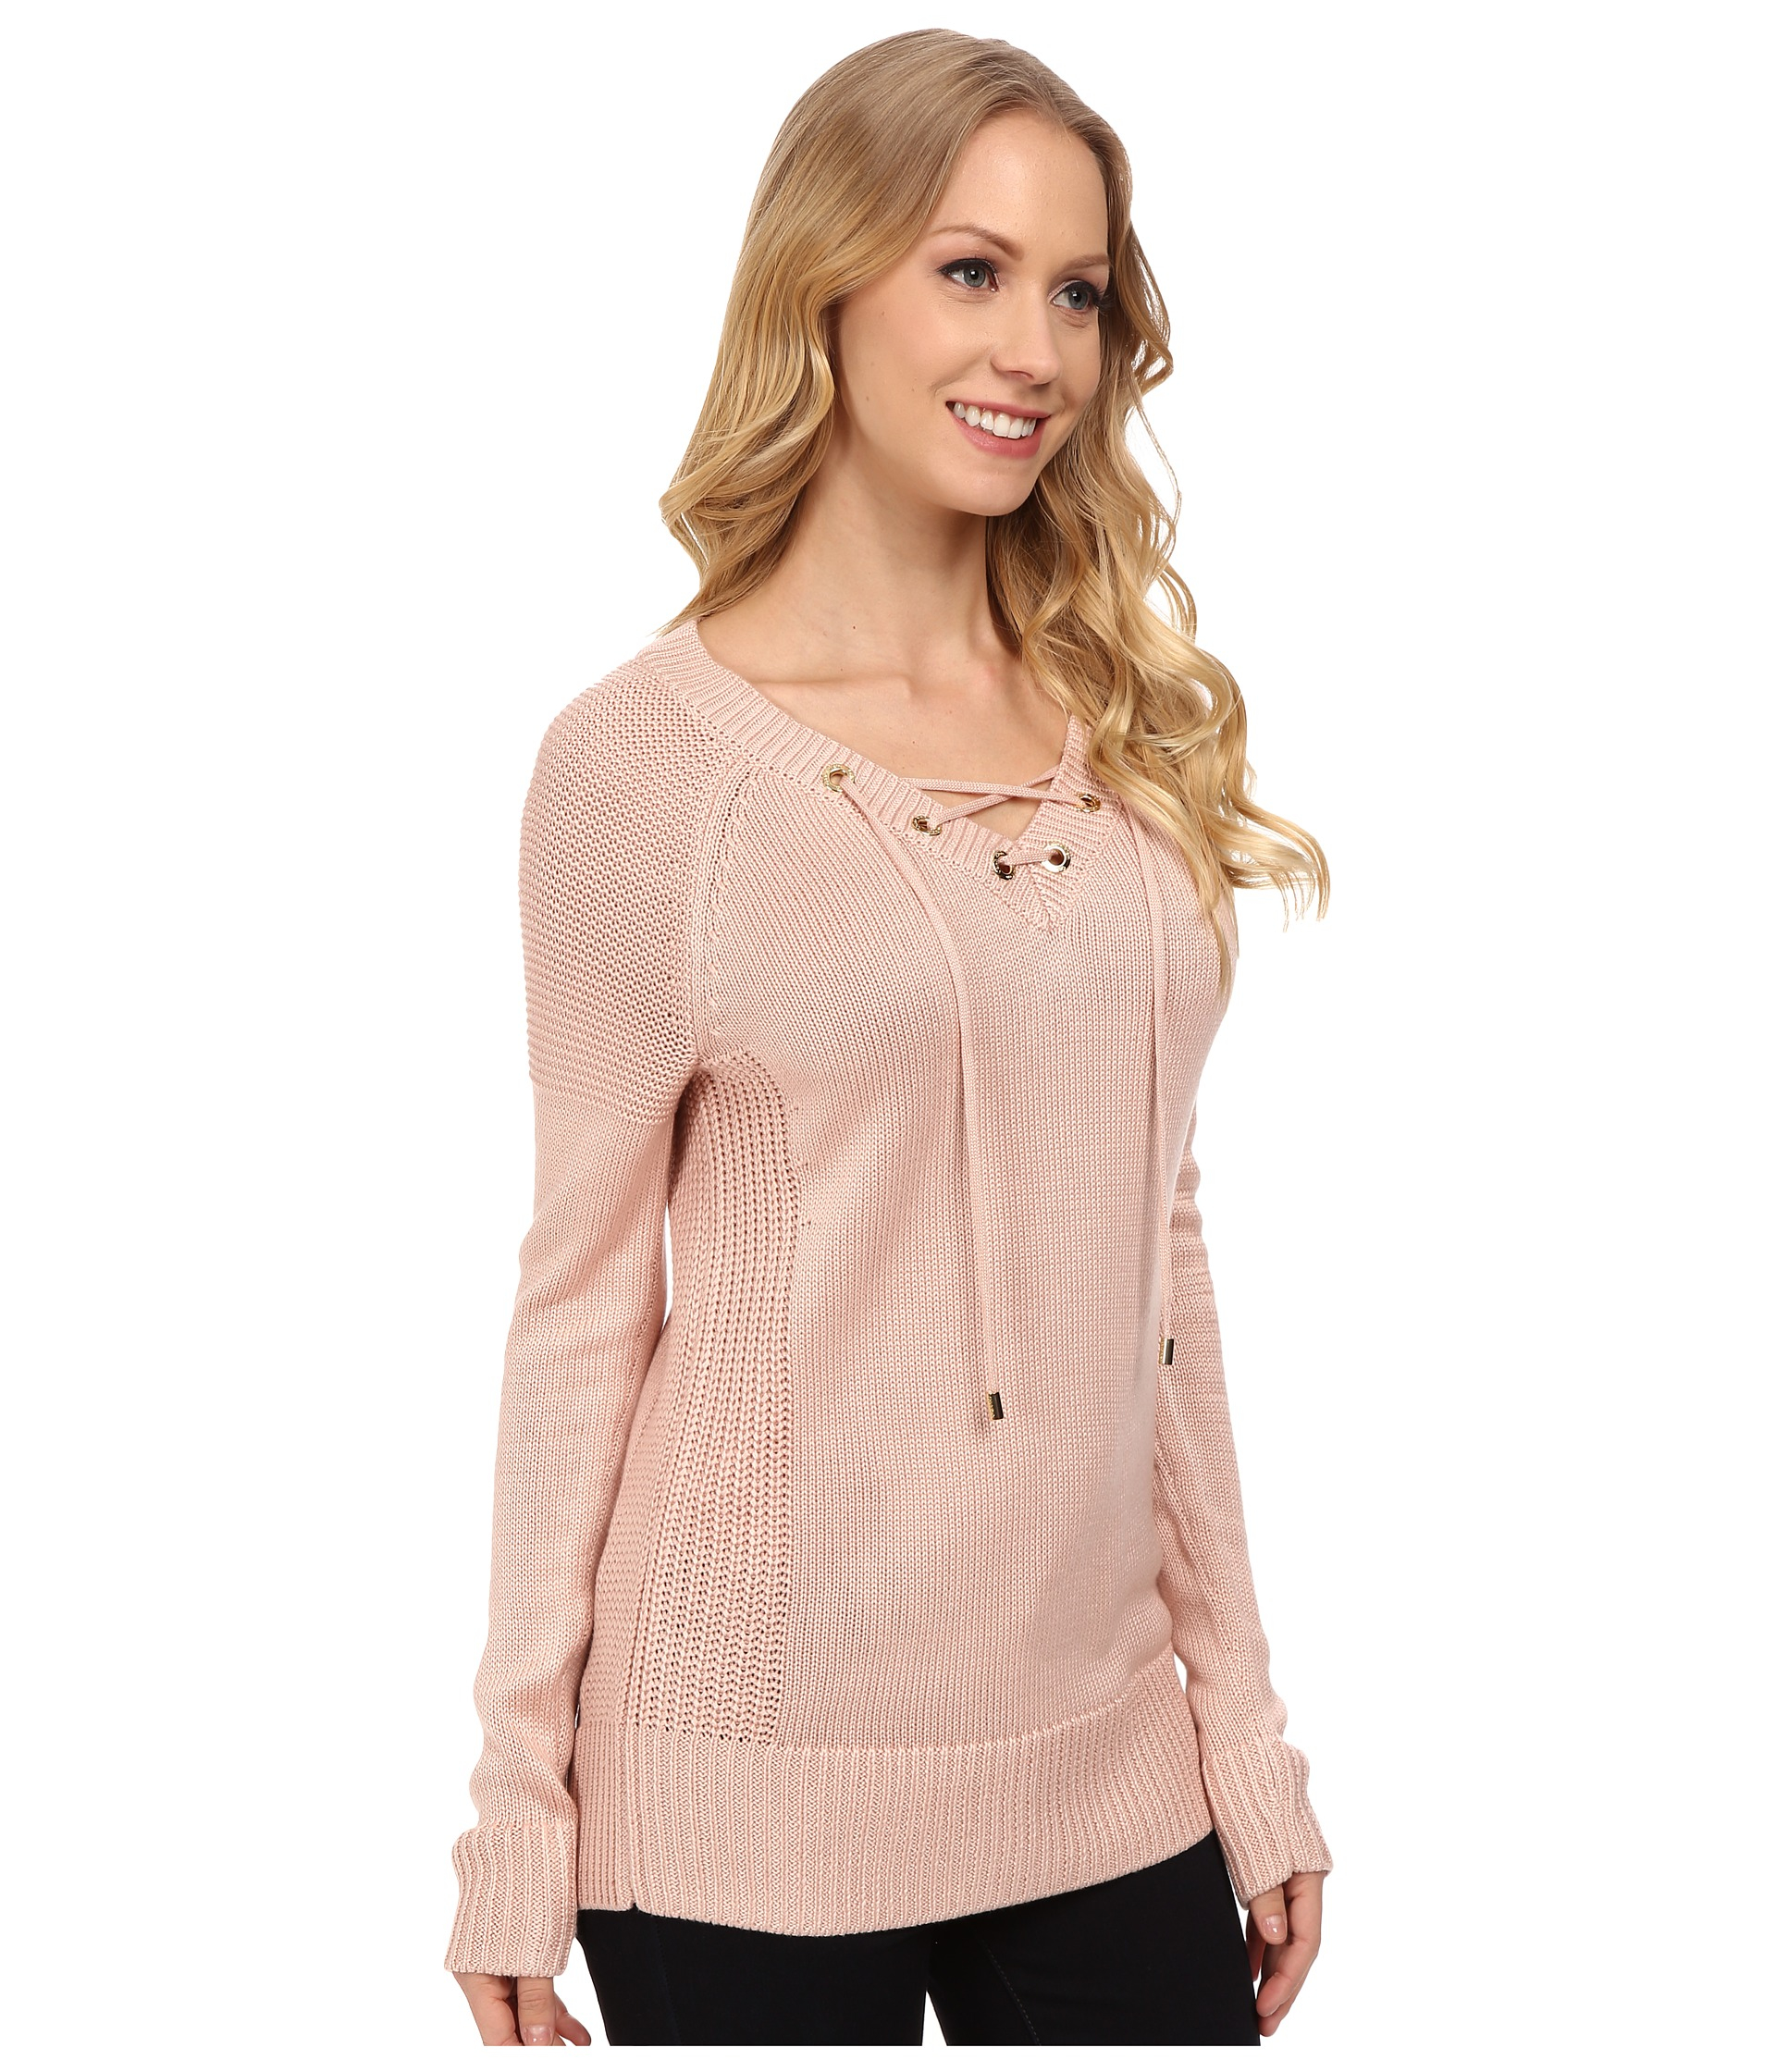 0a0888165d84e Lyst - Calvin Klein Lace Up V-neck Sweater in Pink